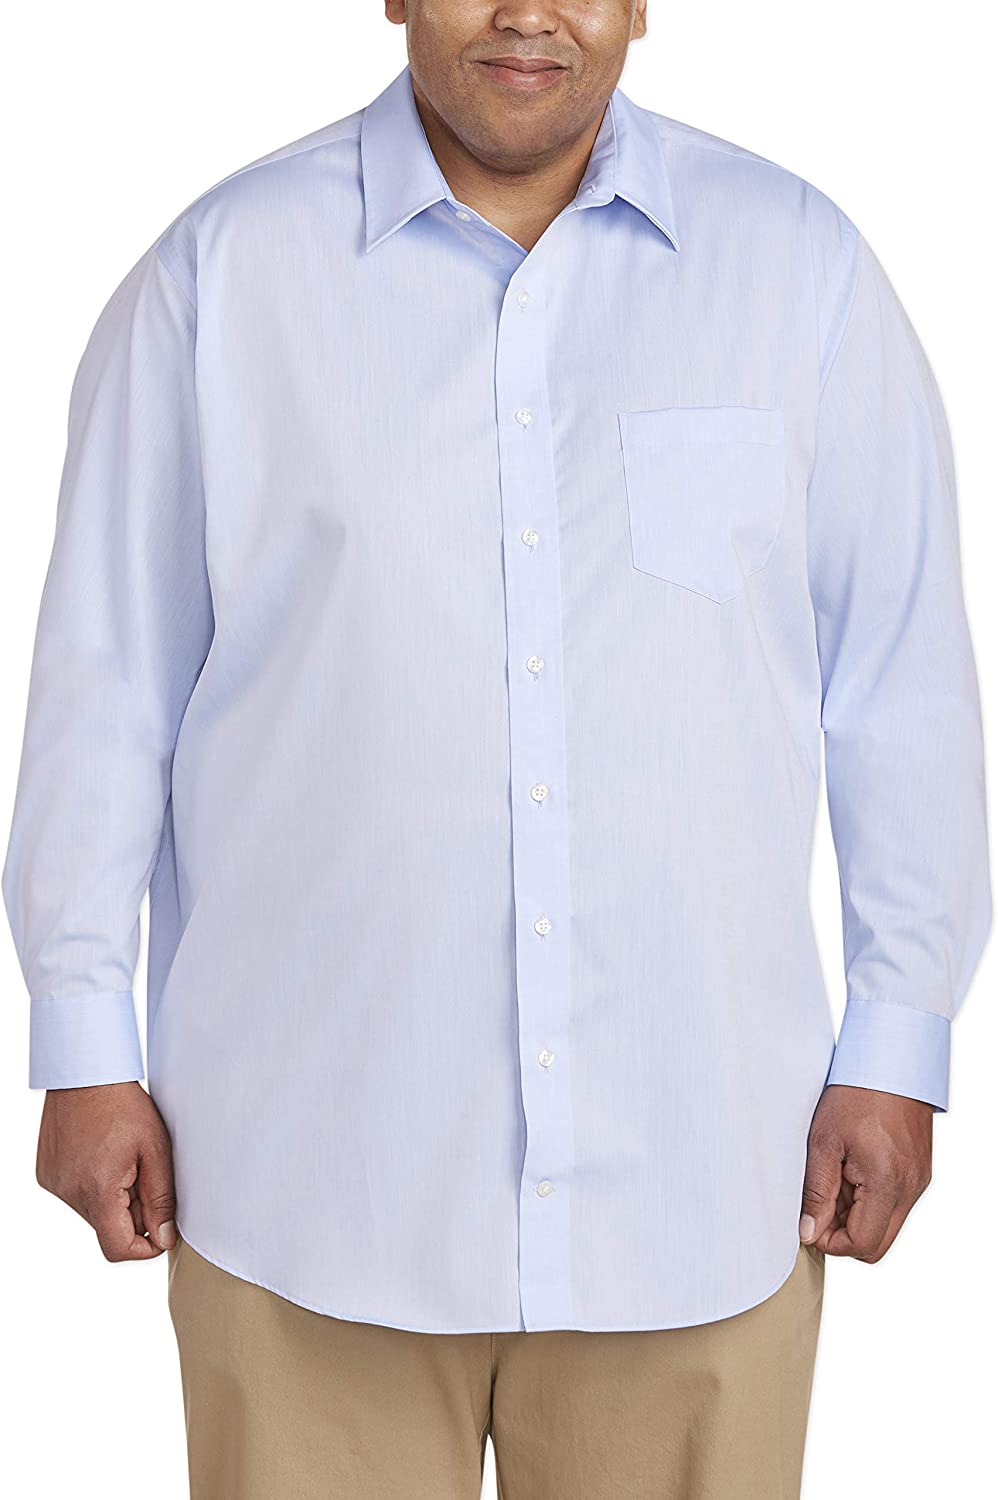 Essentials Men's Big & Tall Wrinkle-Resistant Long-Sleeve Solid Dress Shirt fit by DXL: Clothing